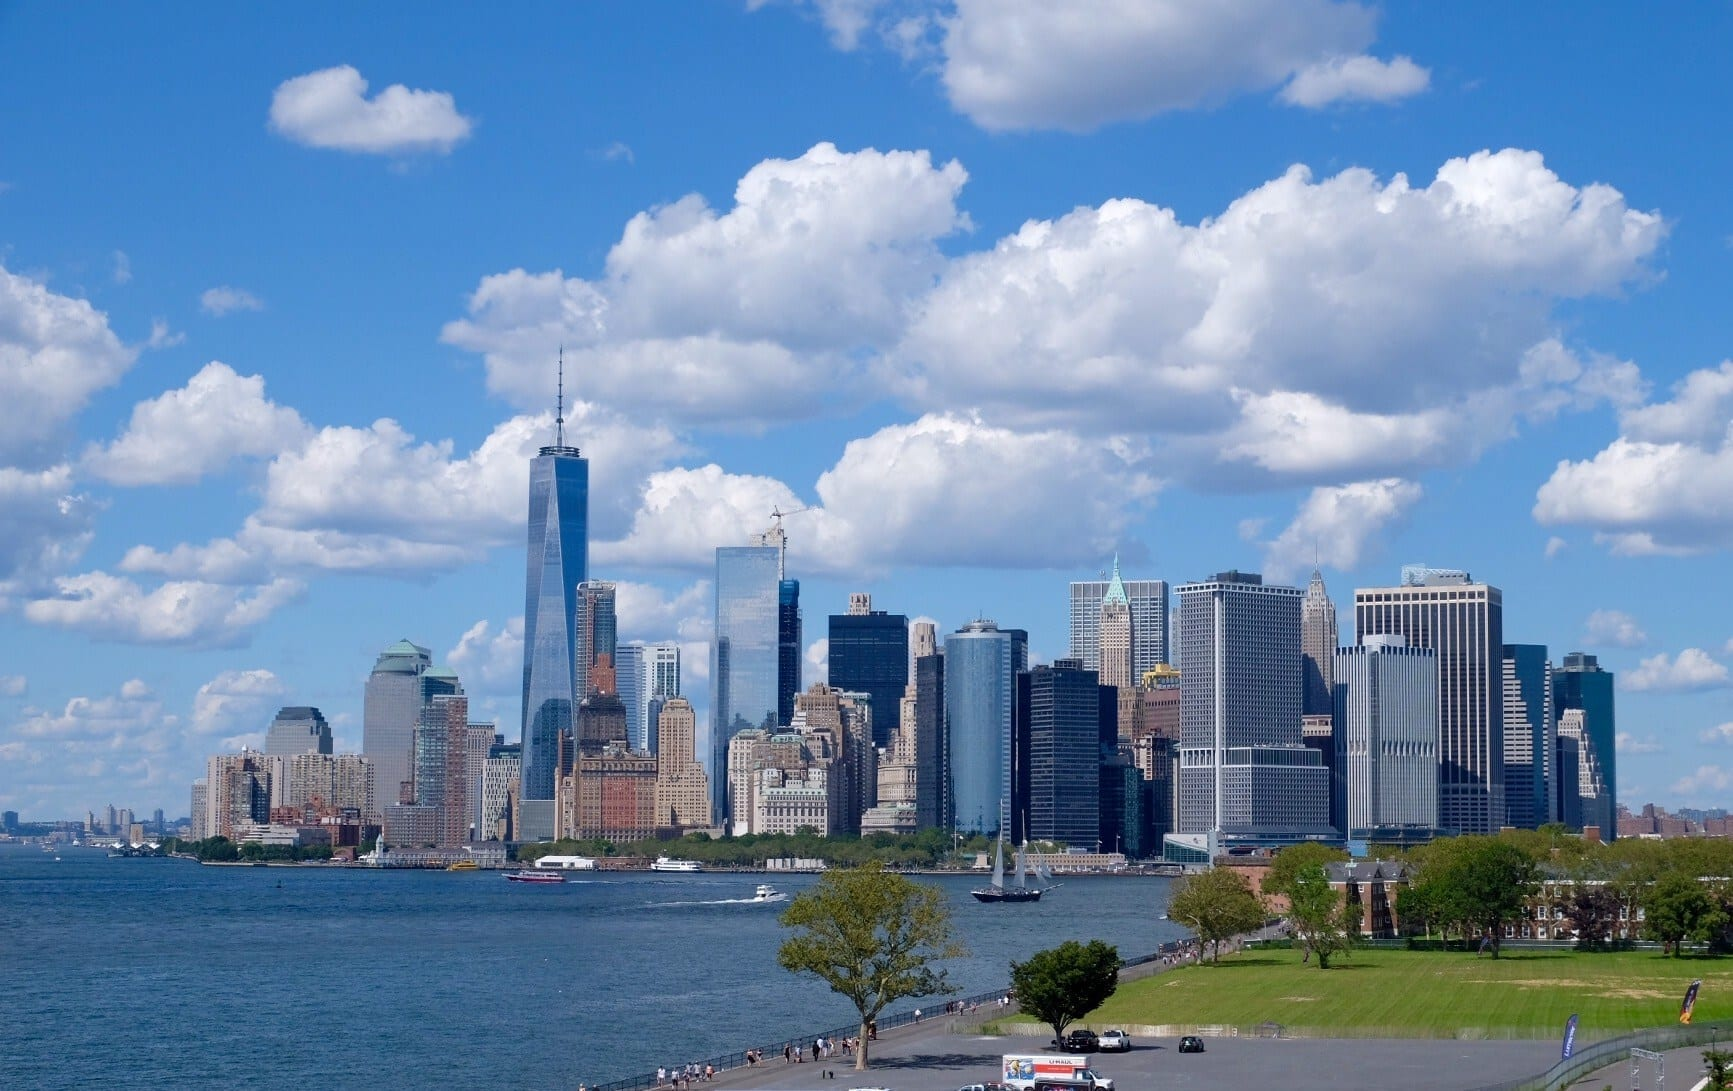 New York View from Governors Island